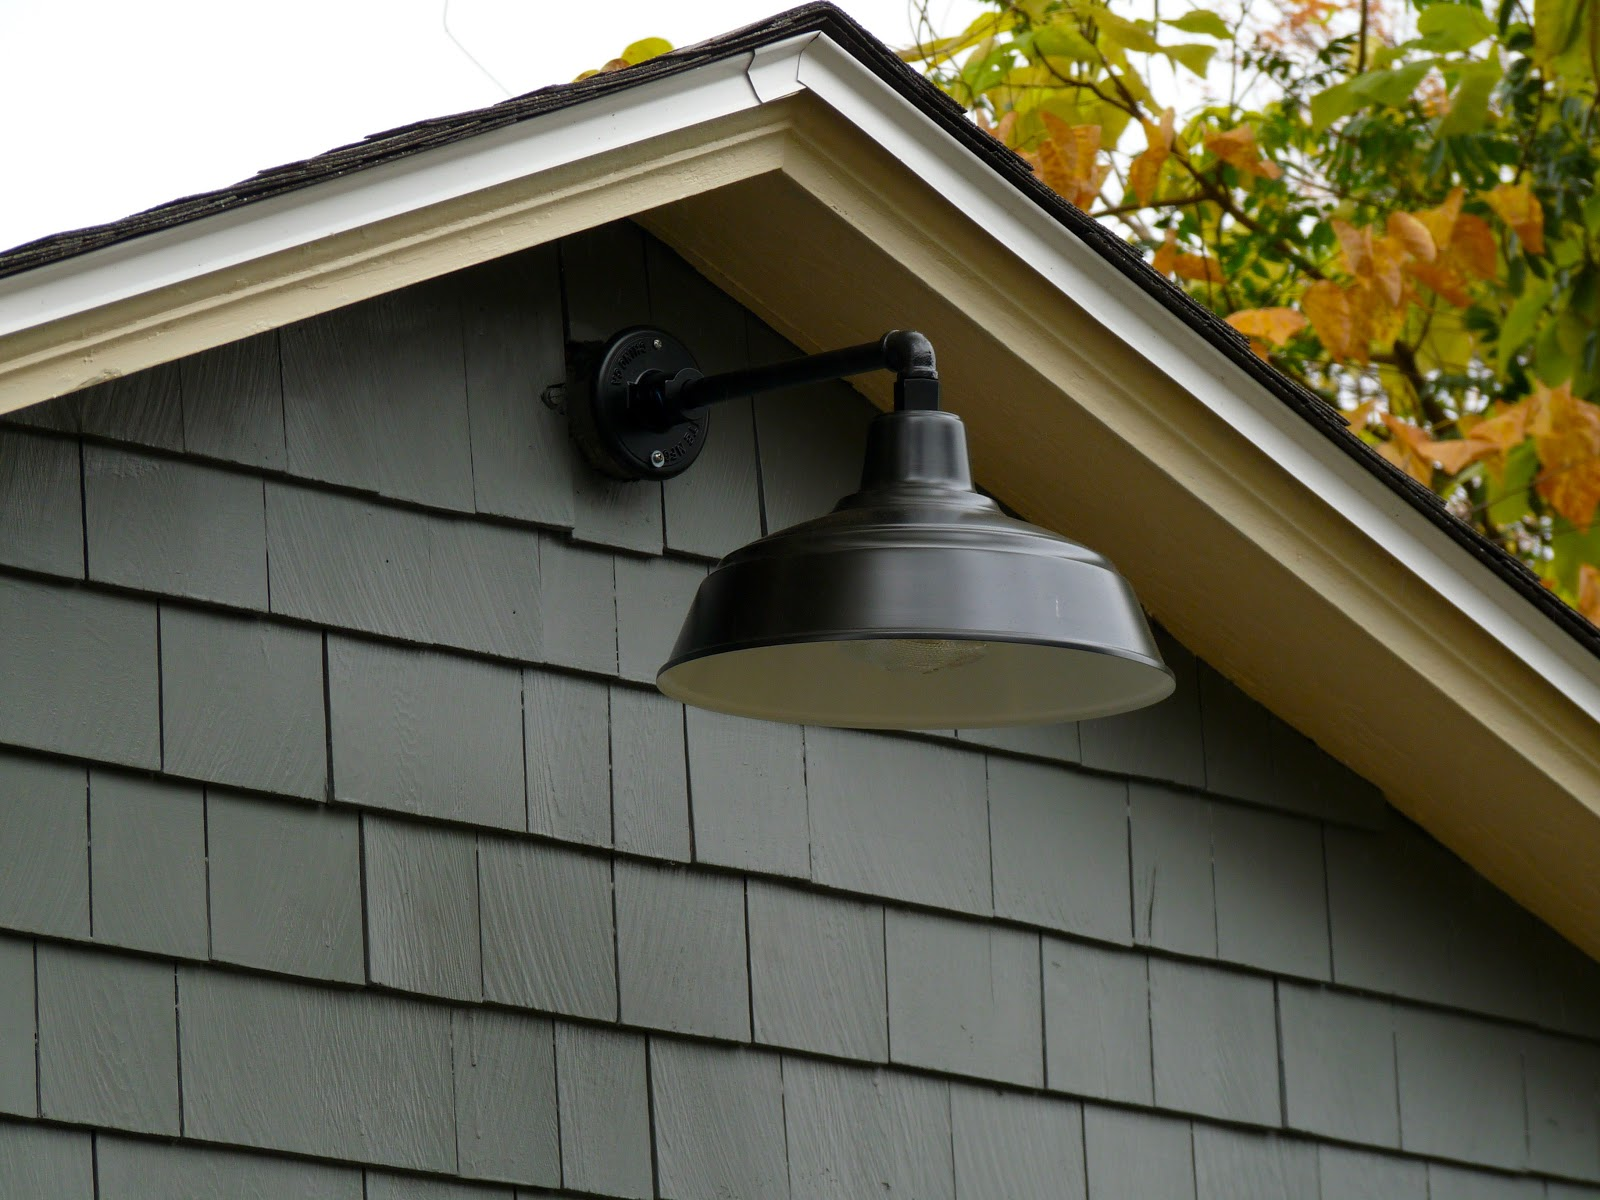 Exterior Lighting: Hazardous Design: November 2012